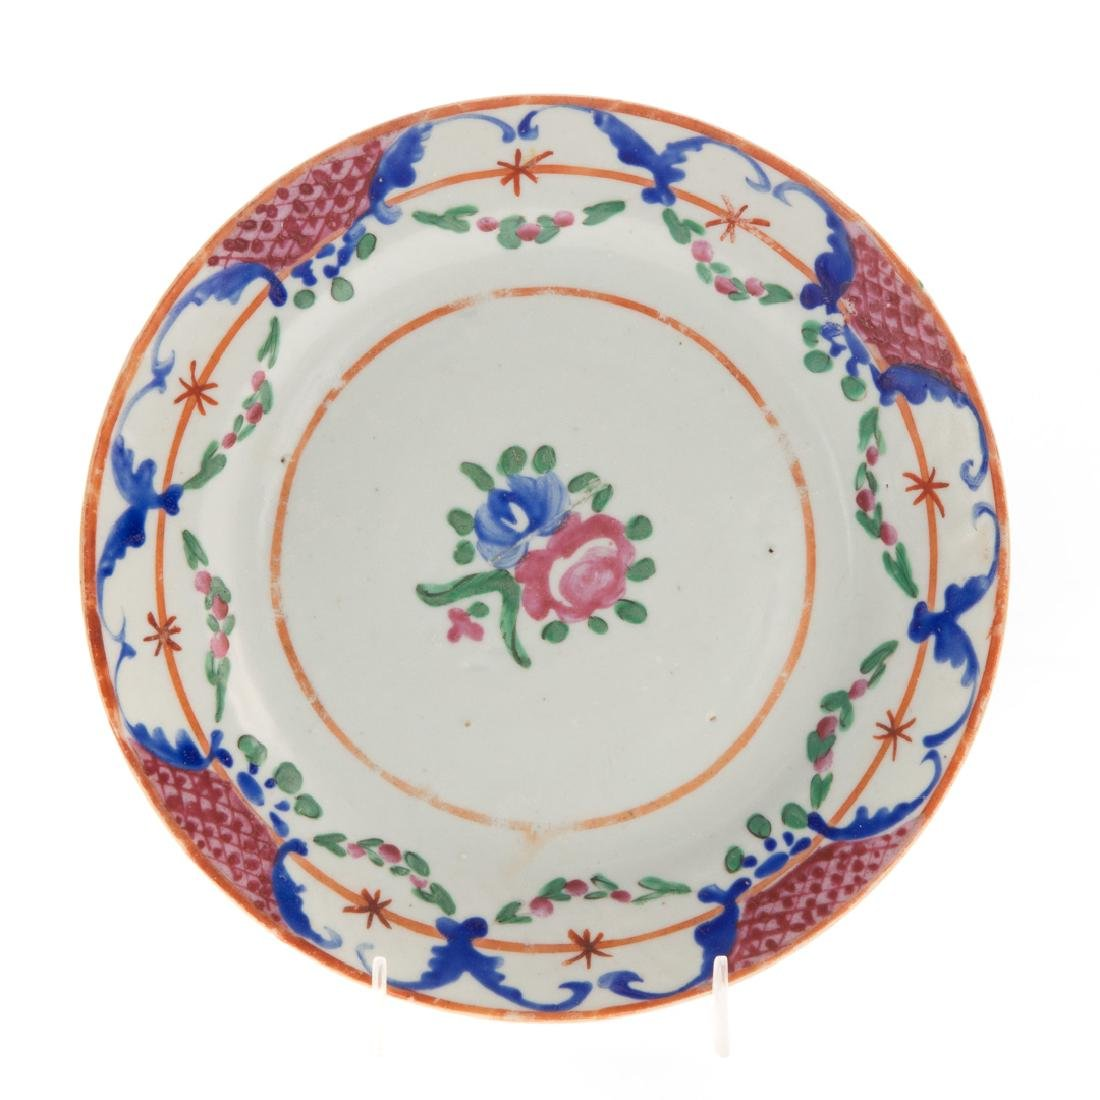 Six Chinese Export porcelain plates - 5